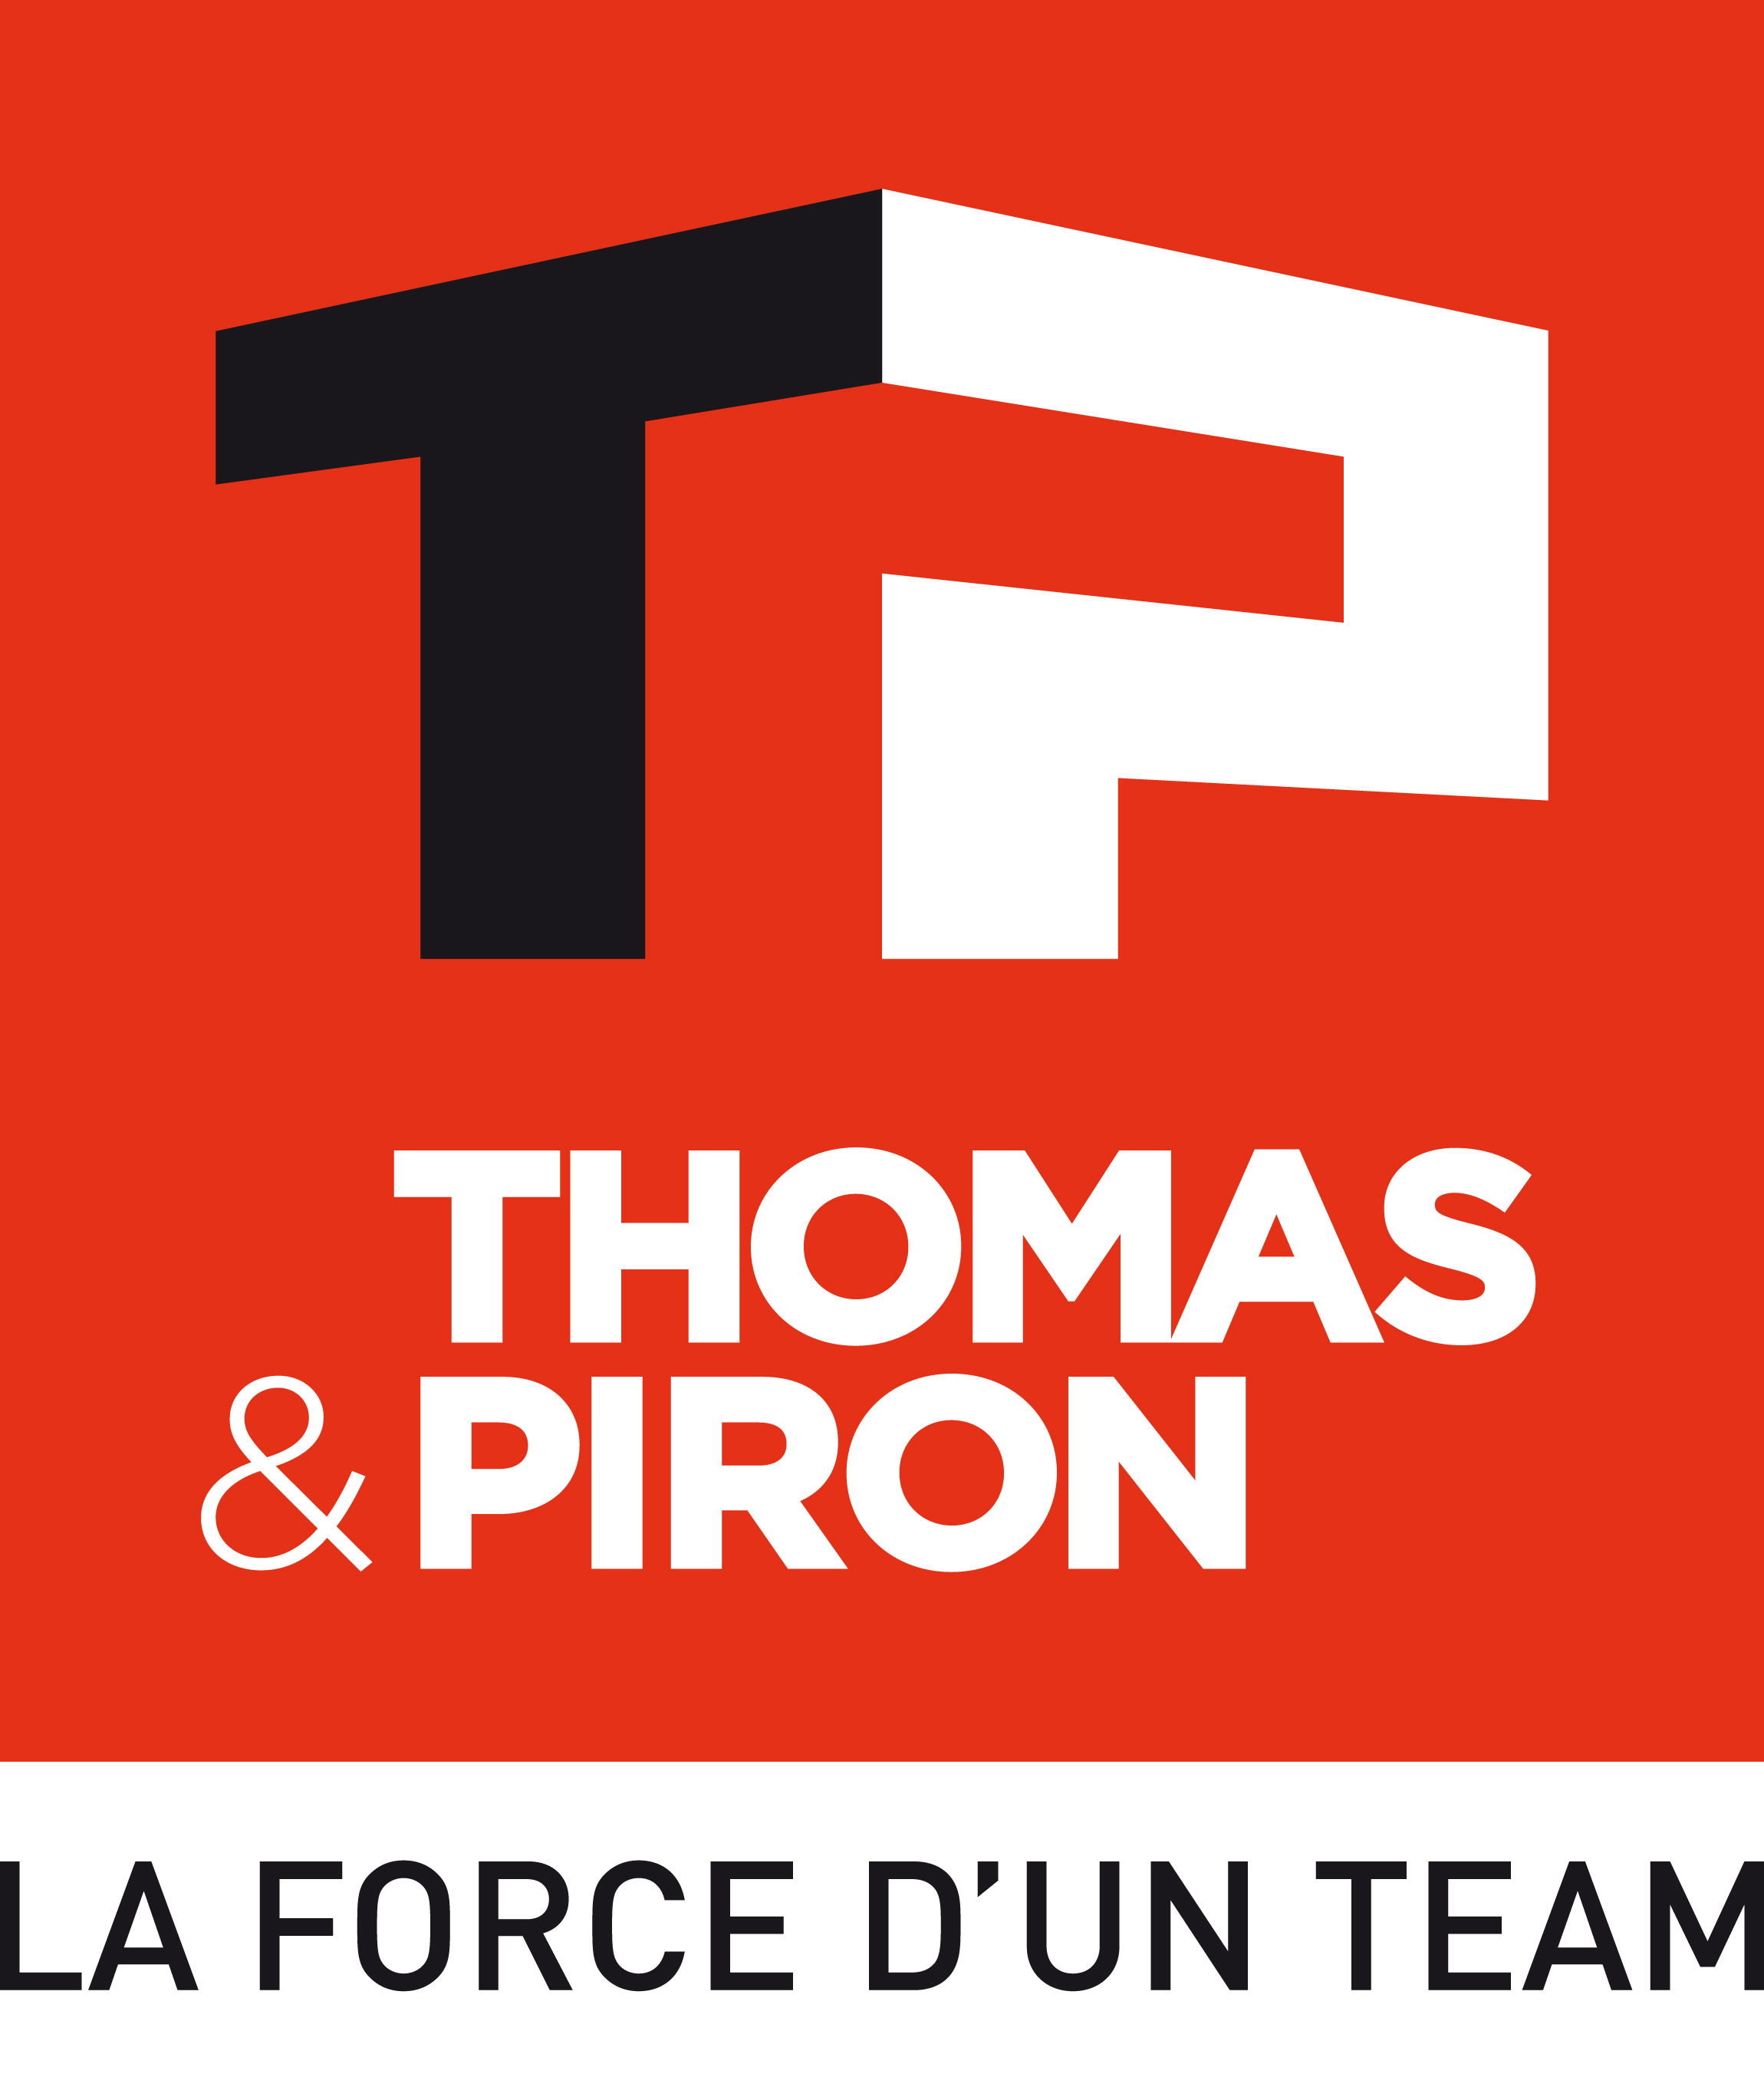 Logo TP - Force dun team